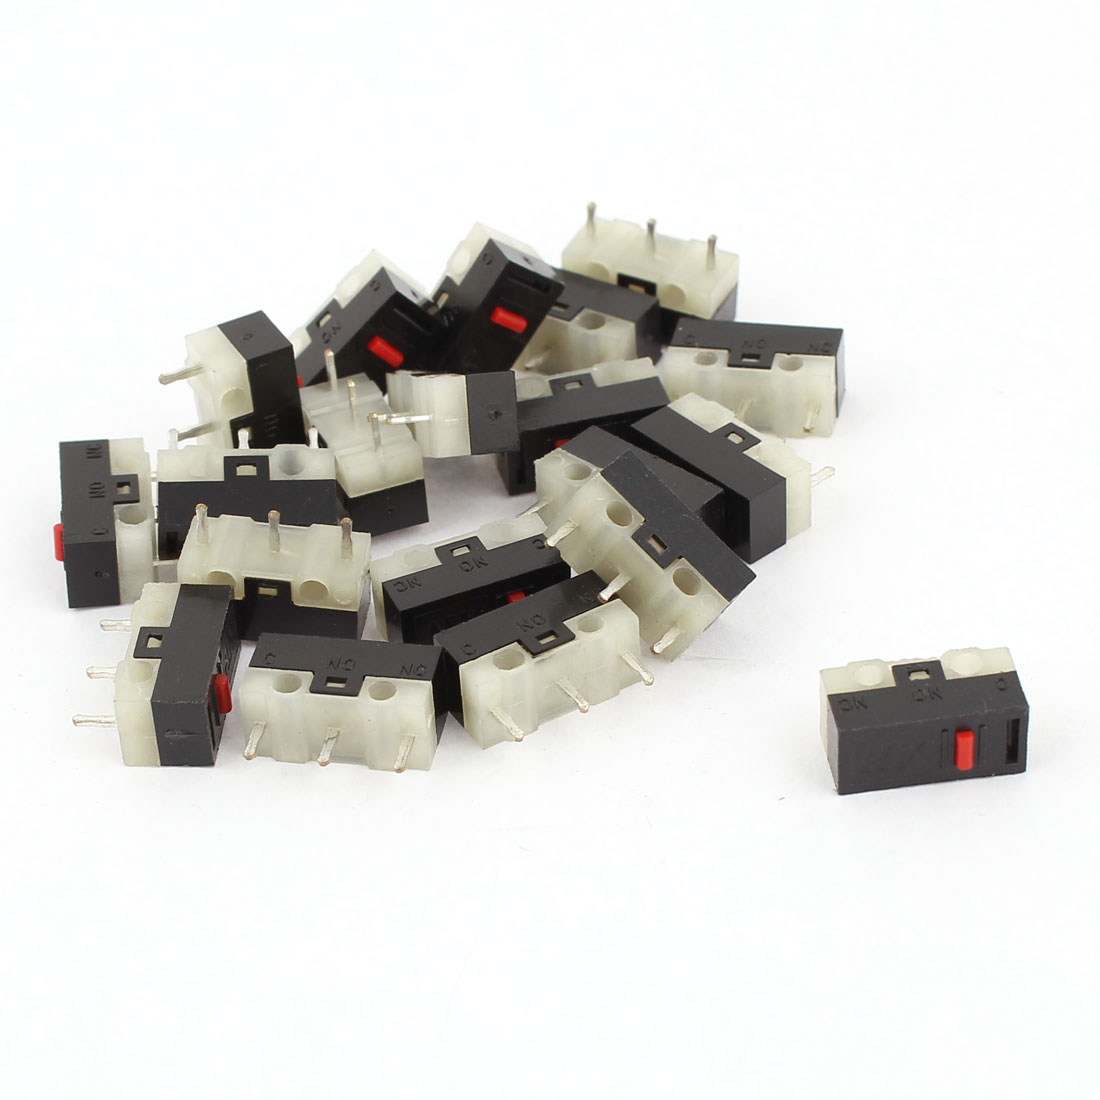 20 Pcs AC 125V 1A 3 Pin Terminal 1NO 1NC Momentary Type SPDT Mini Micro Switches